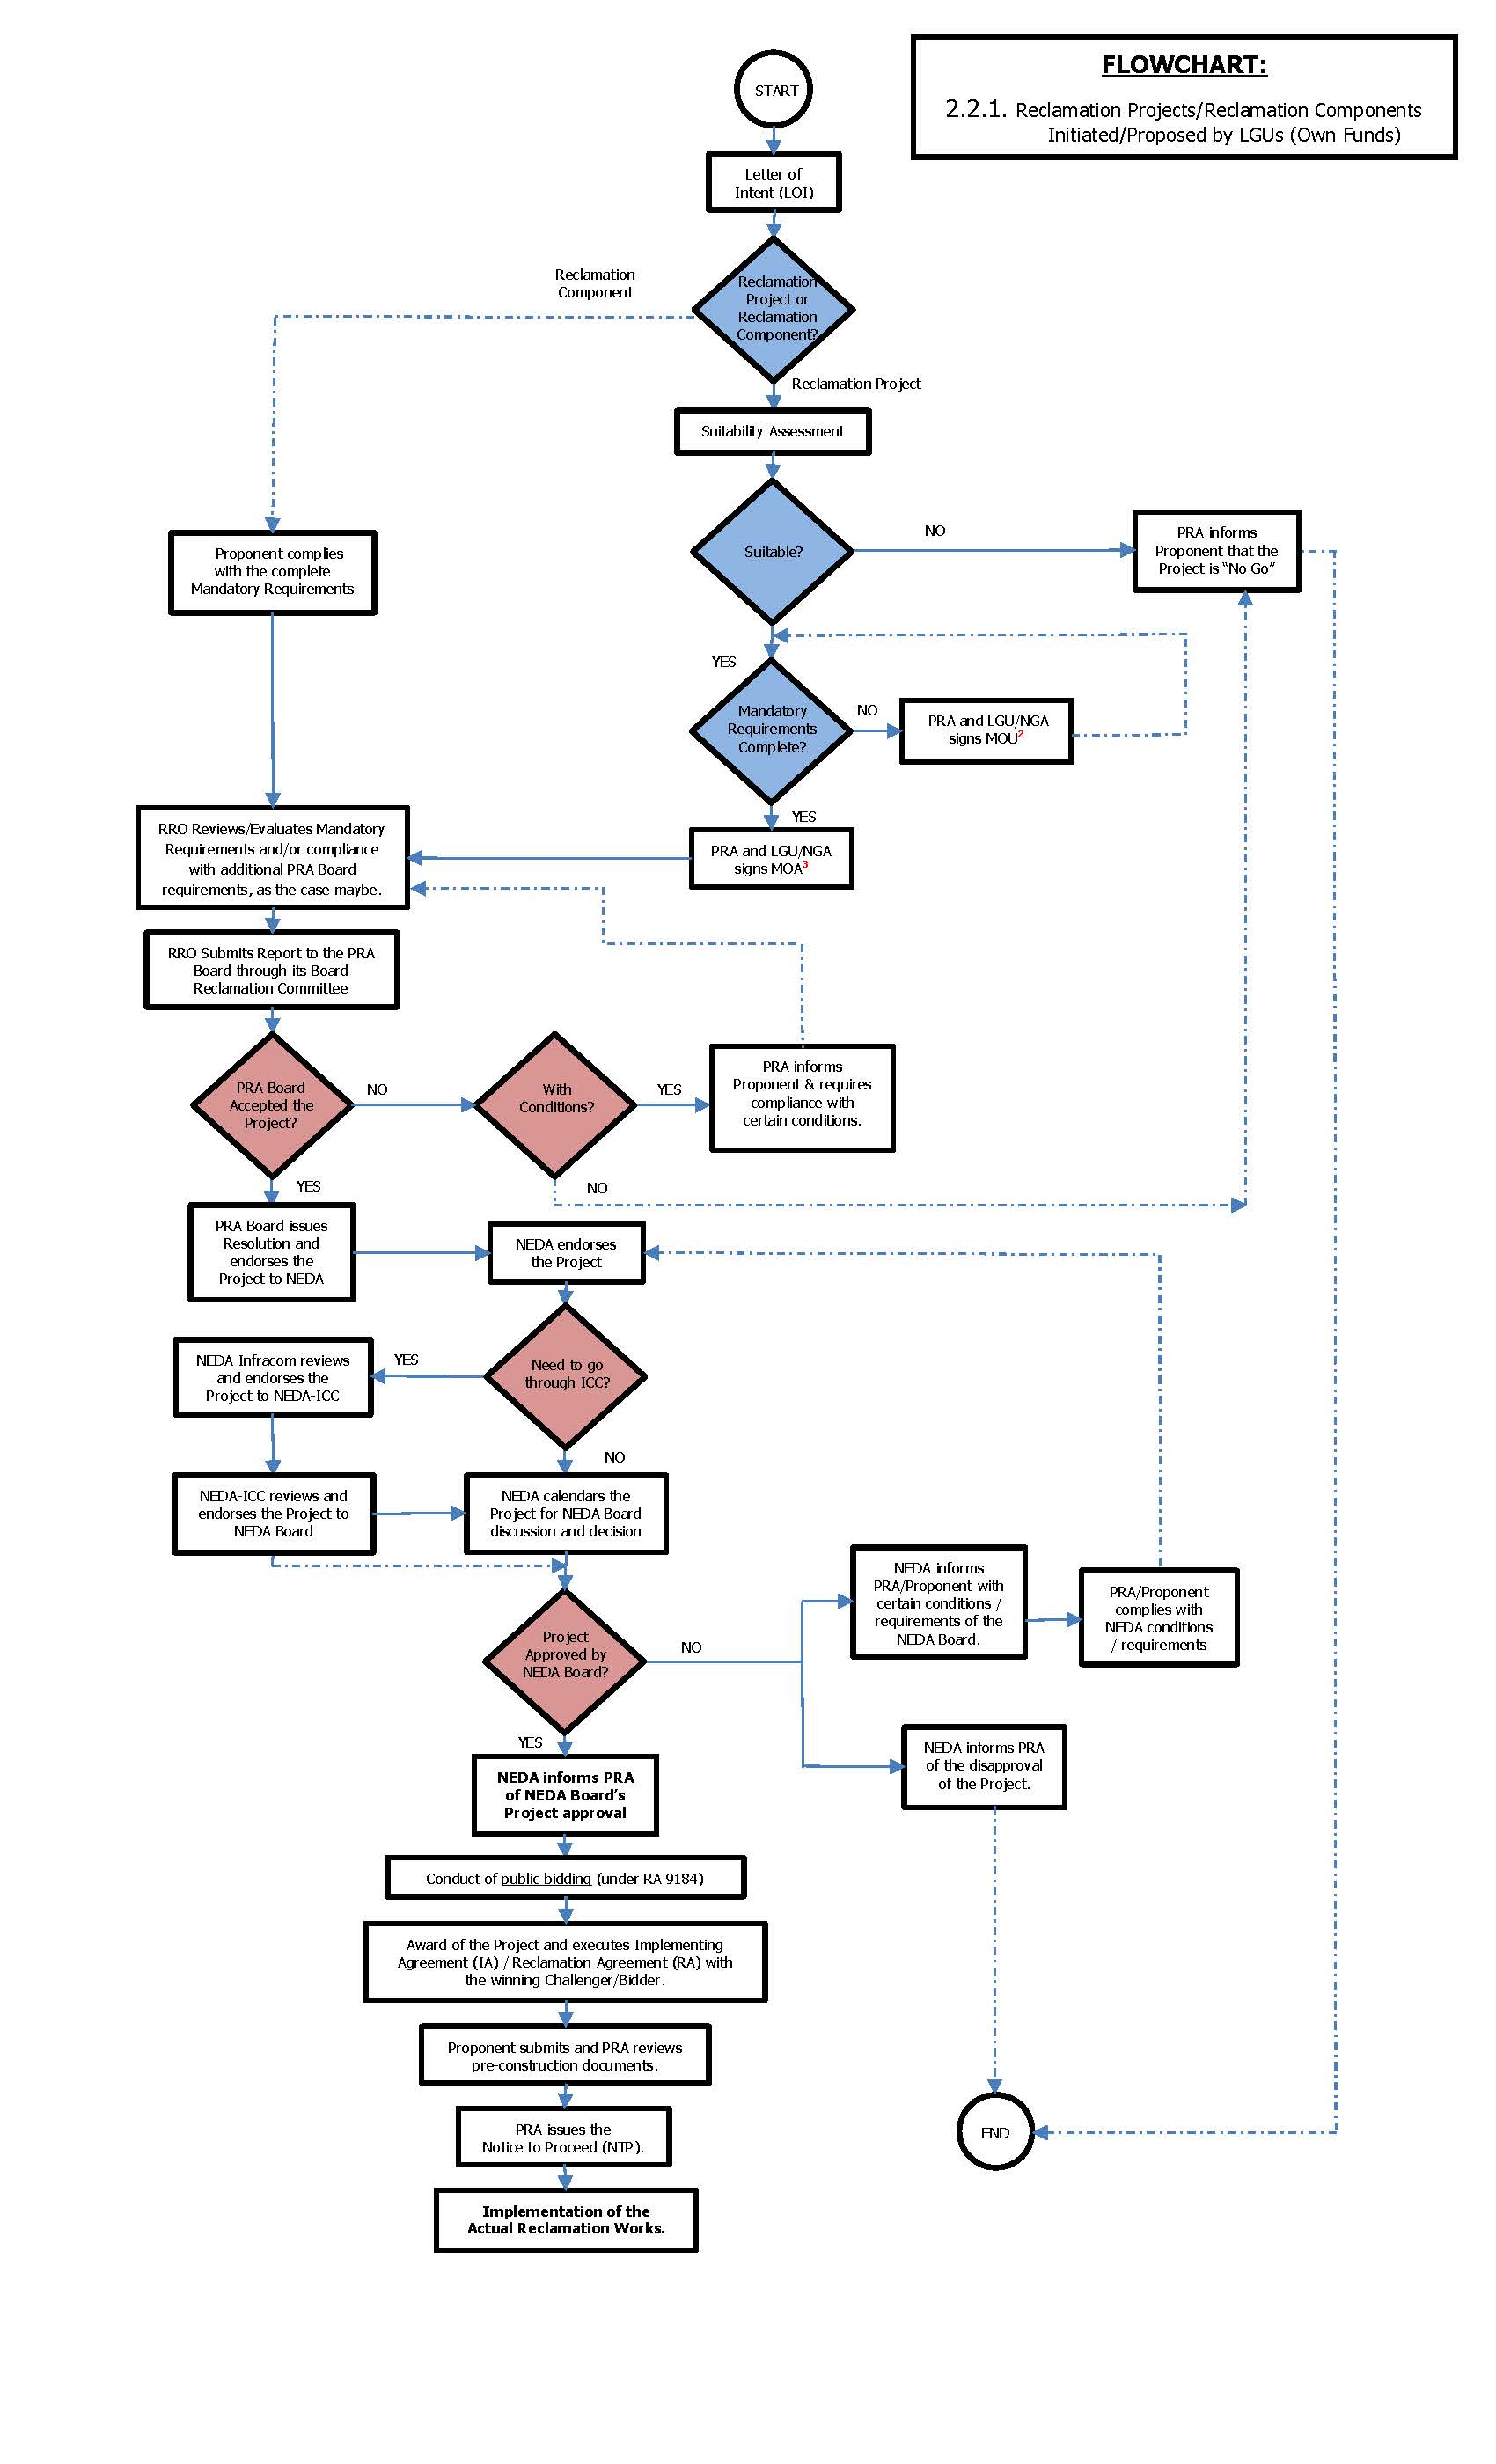 Flowchart2.2.1ReclamationProjects ReclamationComponentsInitiated ProposedByLGUsOwnFunds